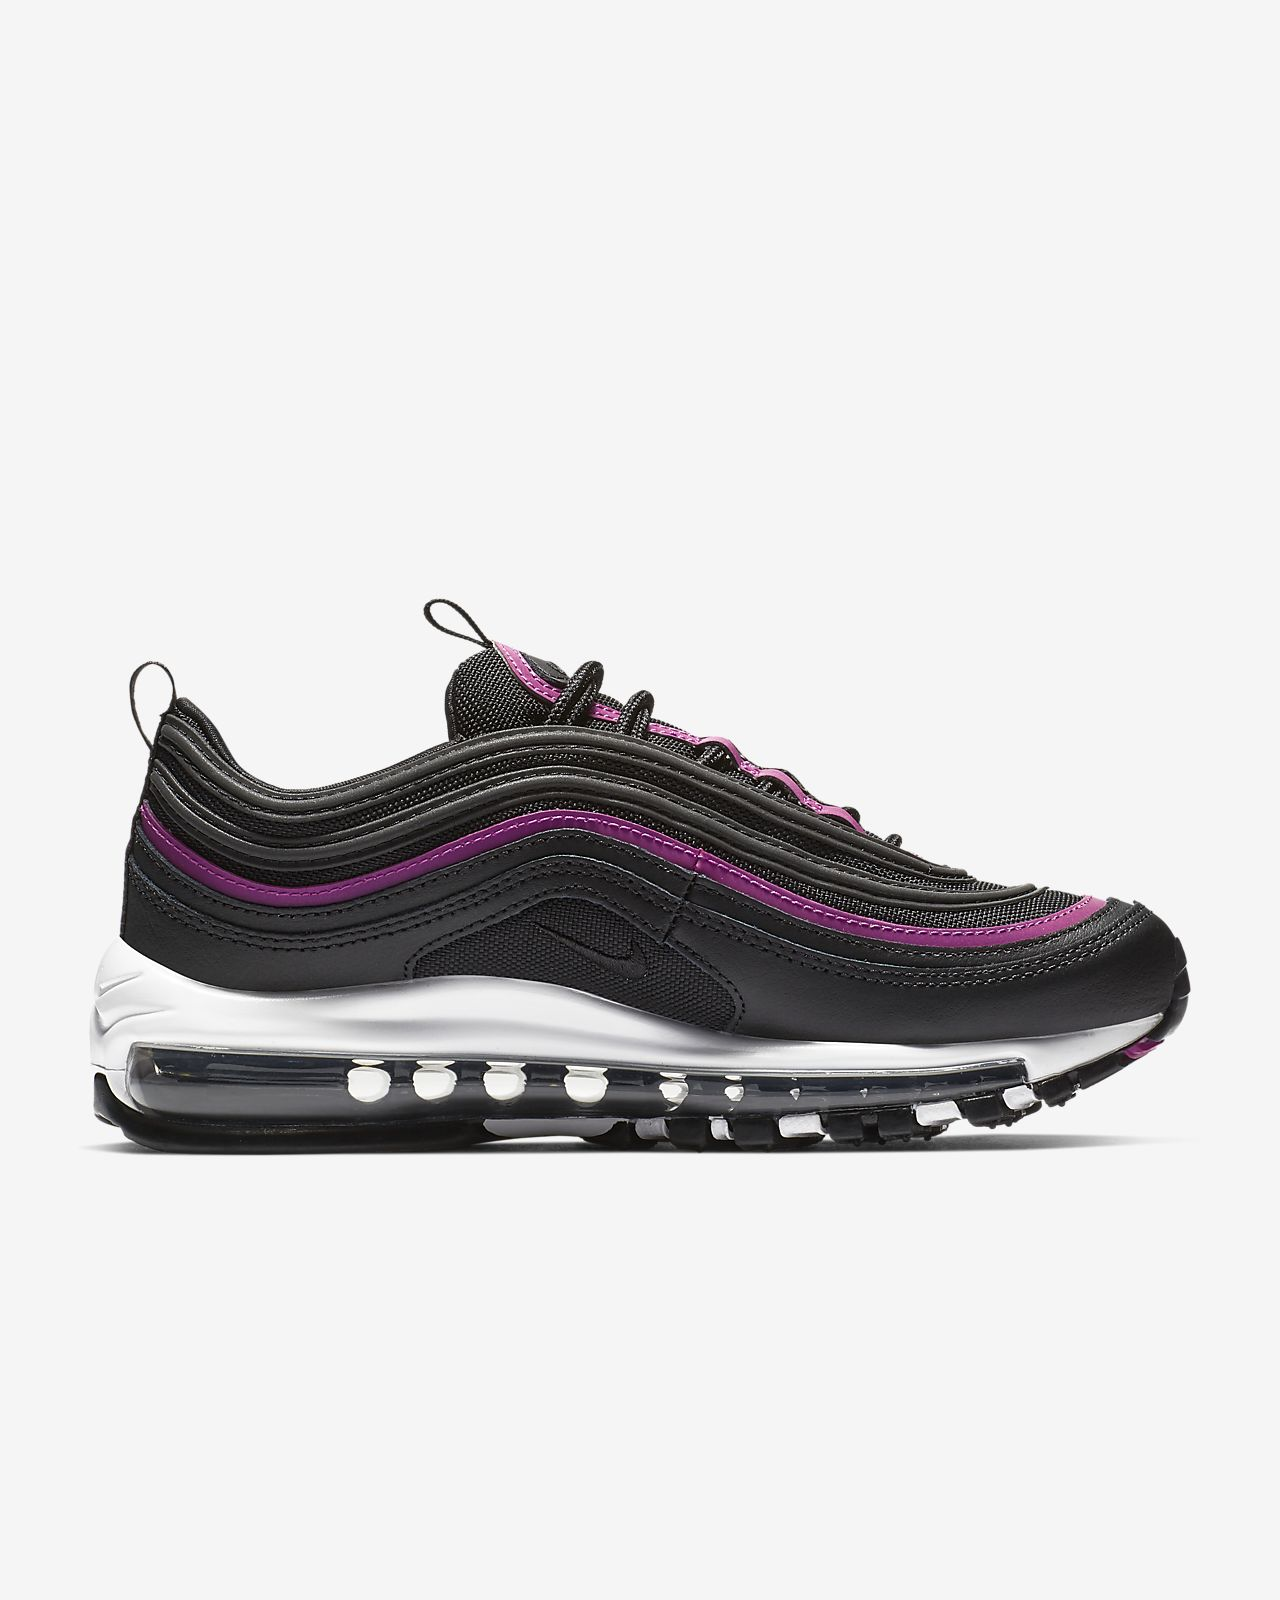 Nike Air Max 97 LX Damenschuh